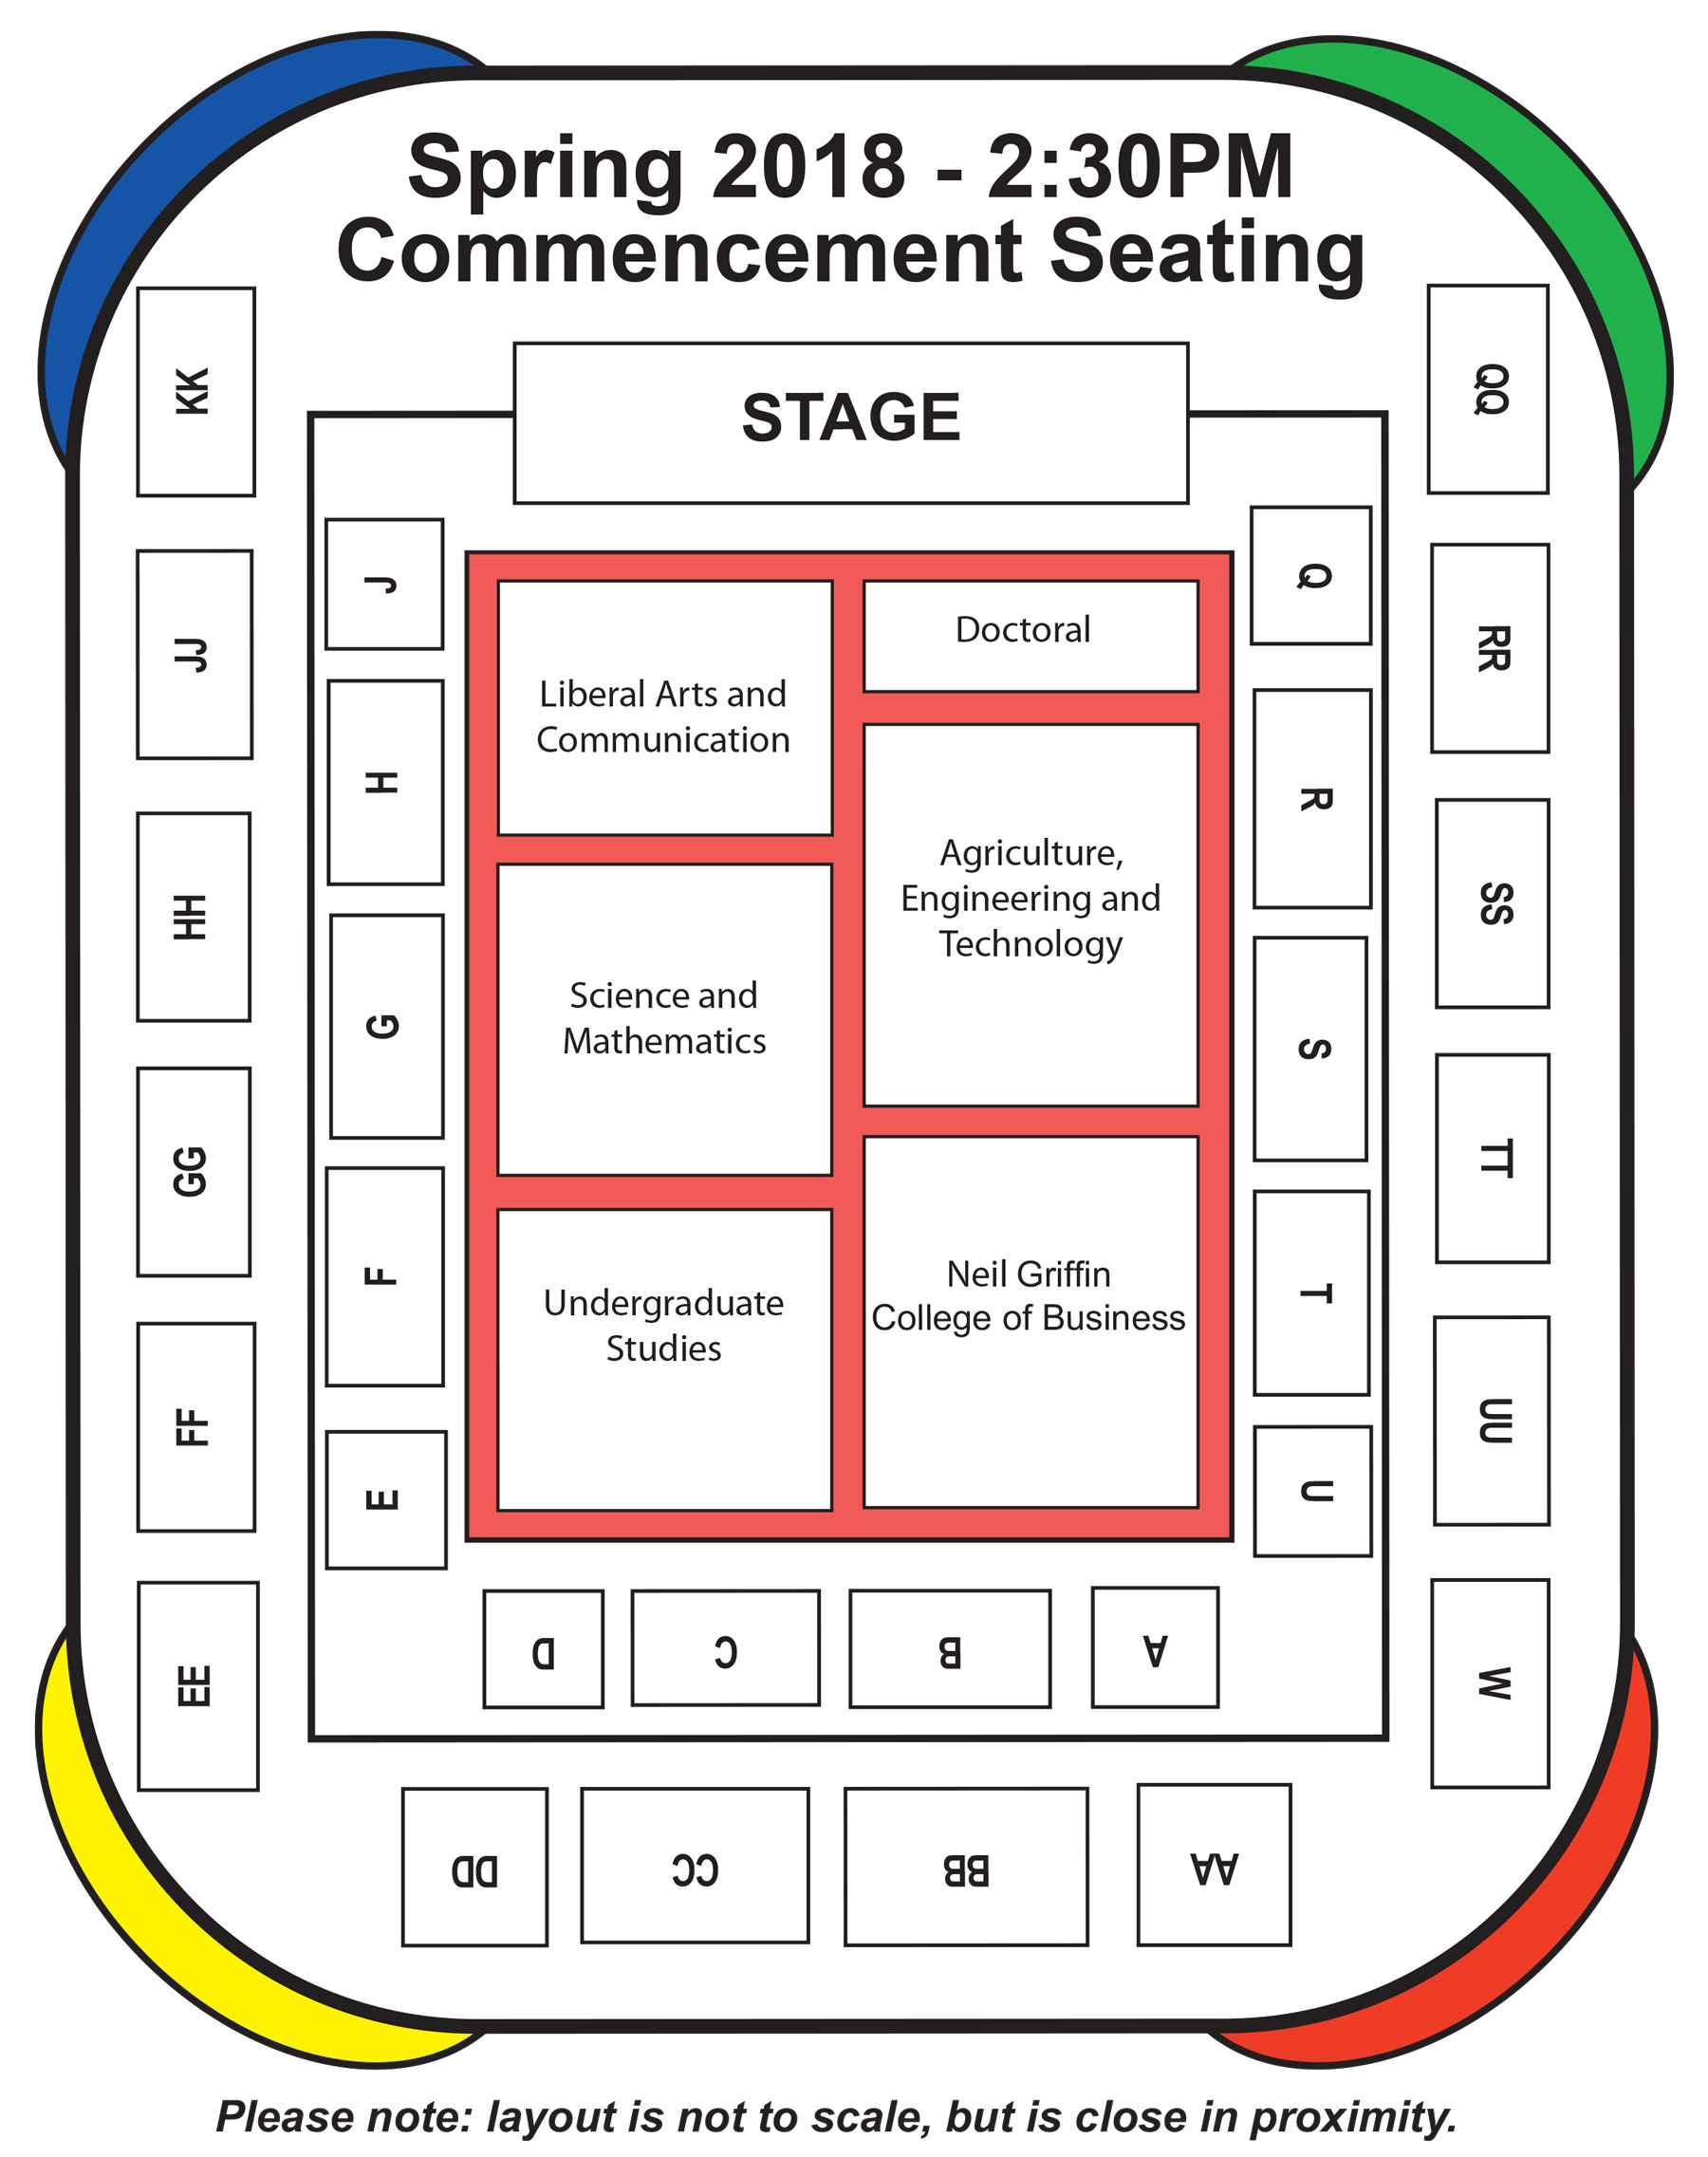 The afternoon commencement seating map